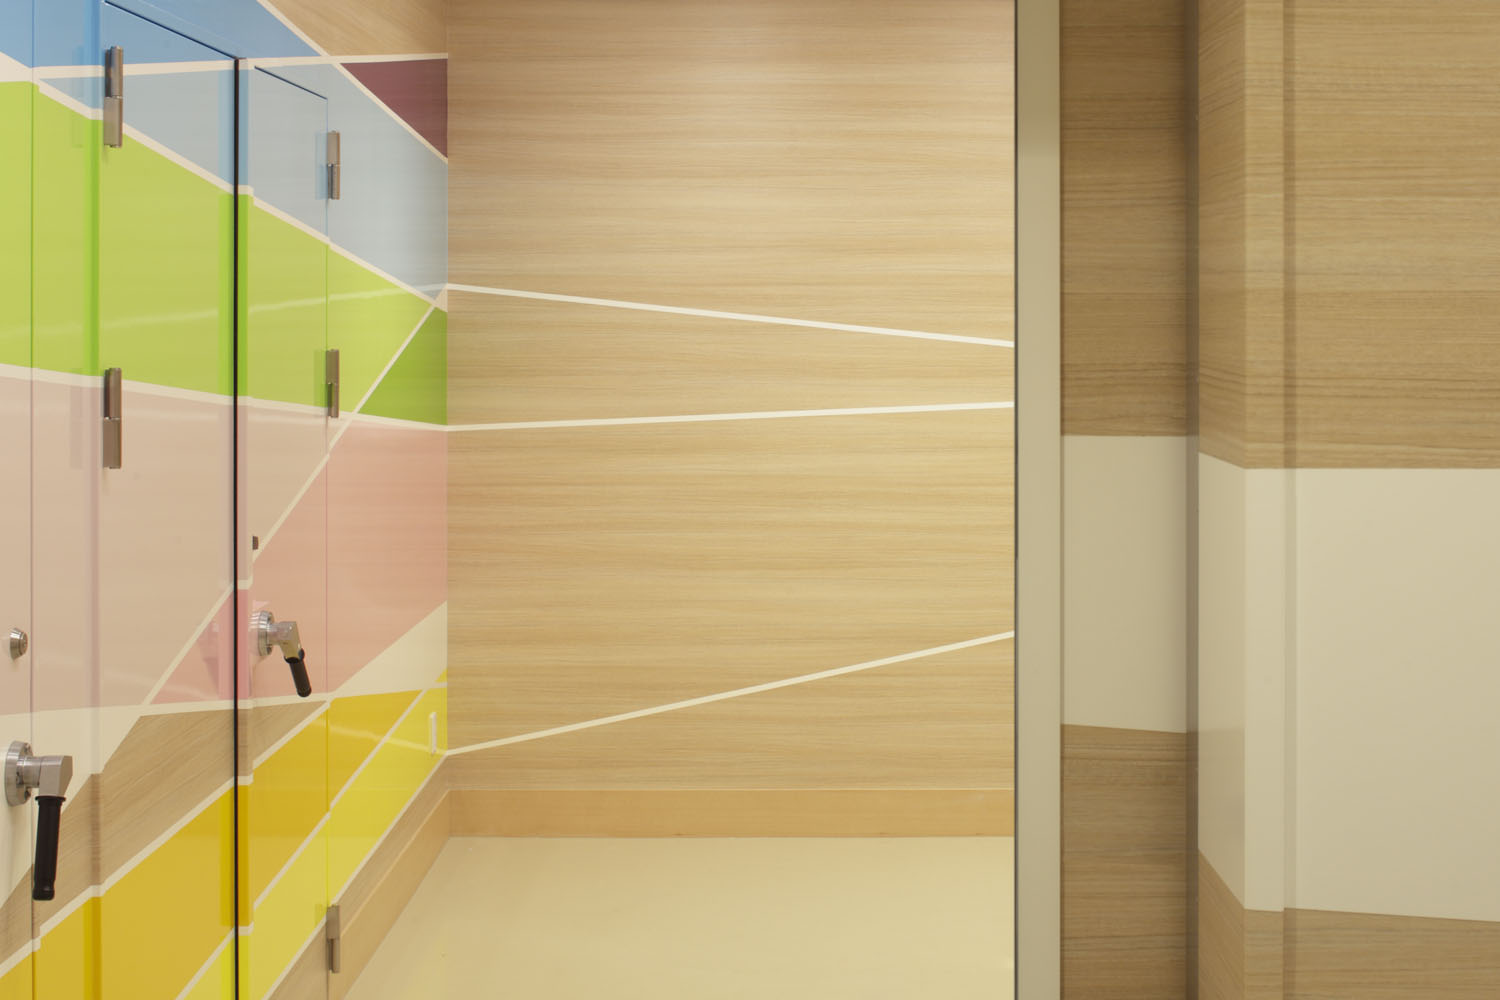 emmanuelle moureaux architecture design all kyoto university hospital clinical research center for medical equipment development